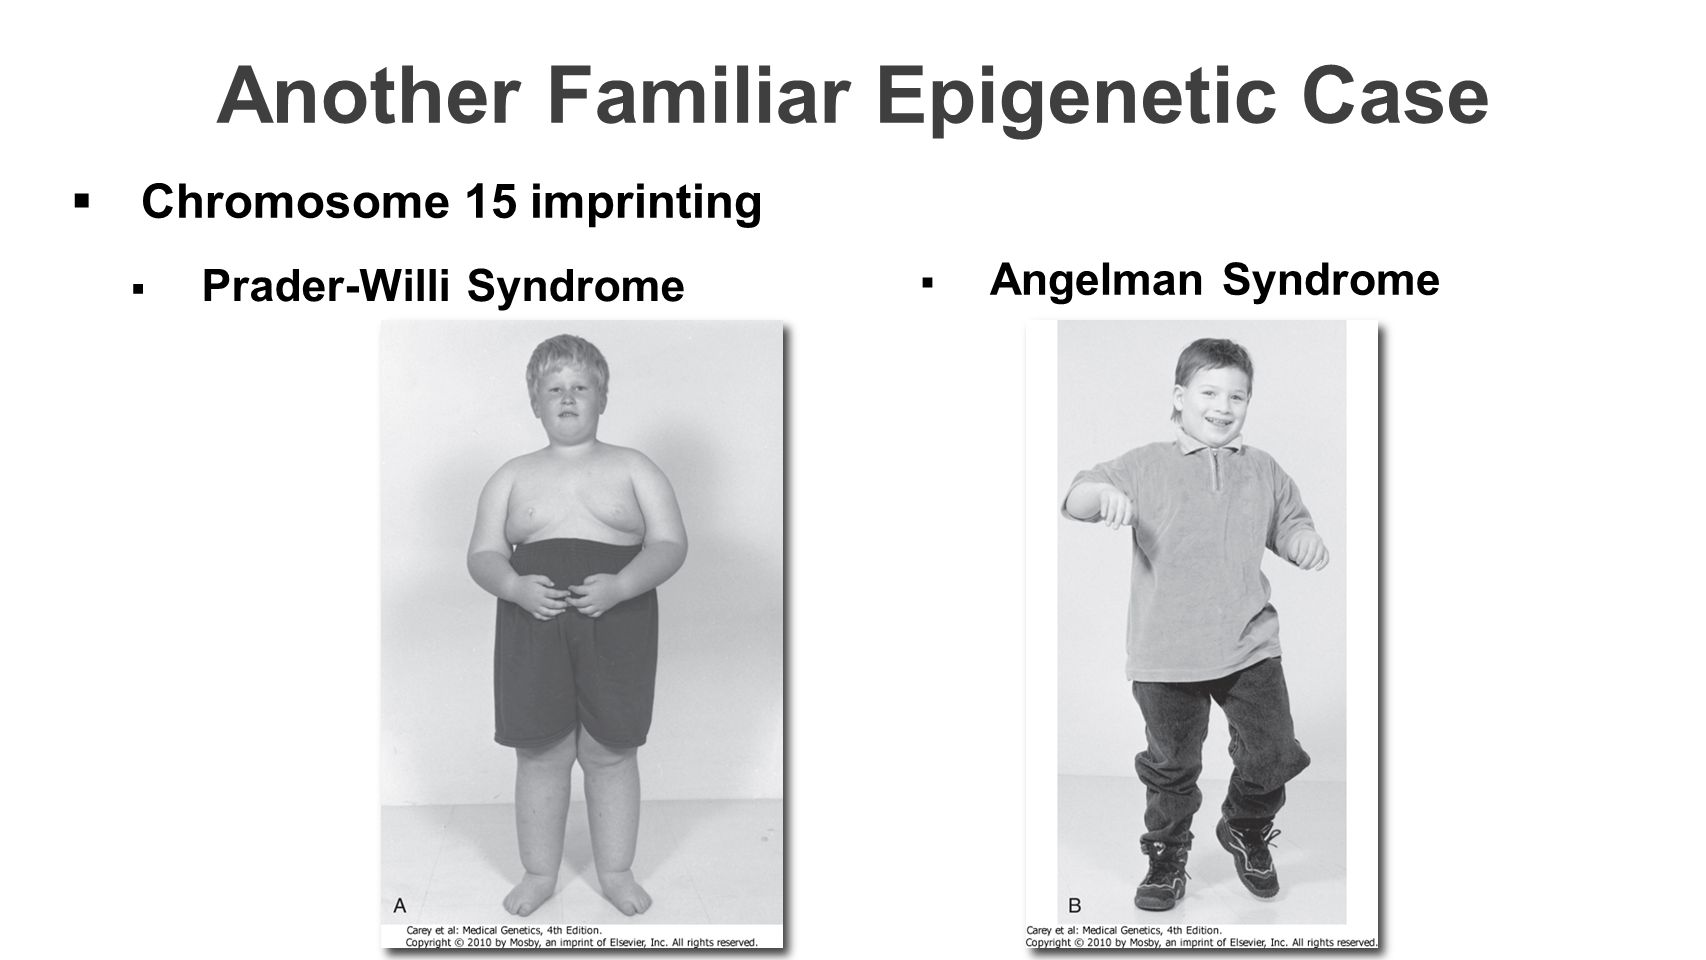 Another Familiar Epigenetic Case  Prader-Willi Syndrome  Angelman Syndrome  Chromosome 15 imprinting